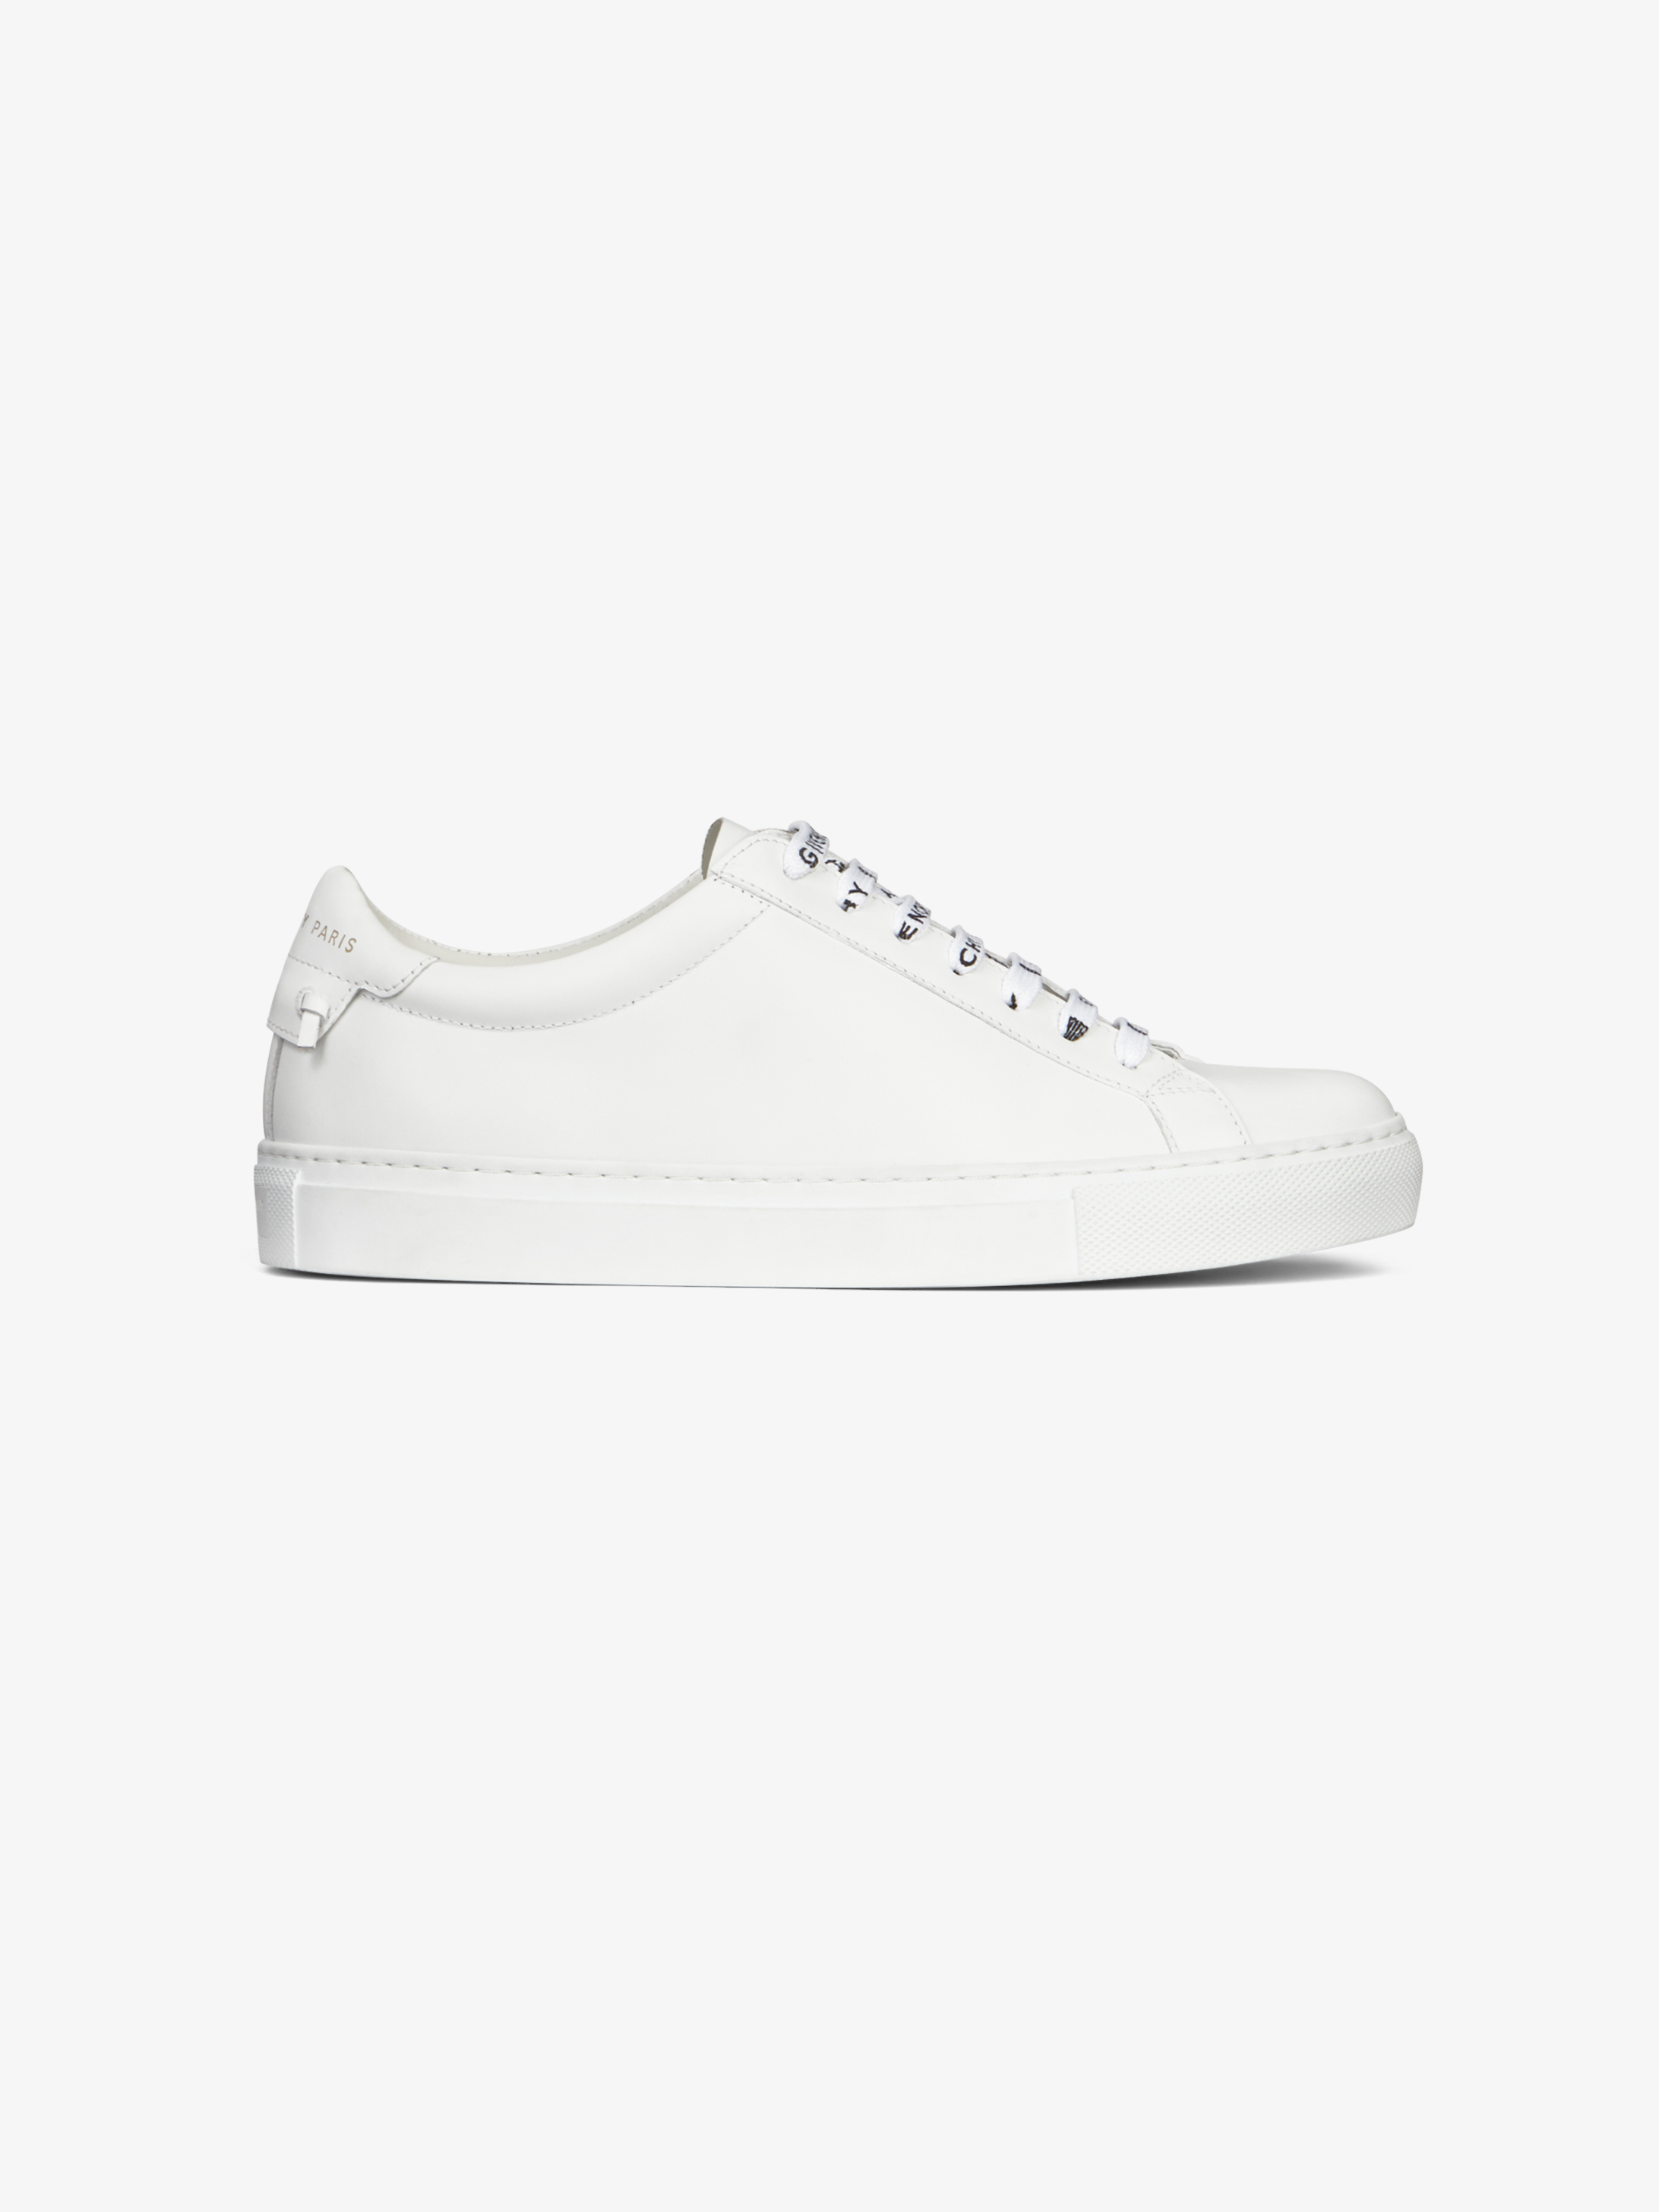 GIVENCHY 4G shoelace sneakers in leather